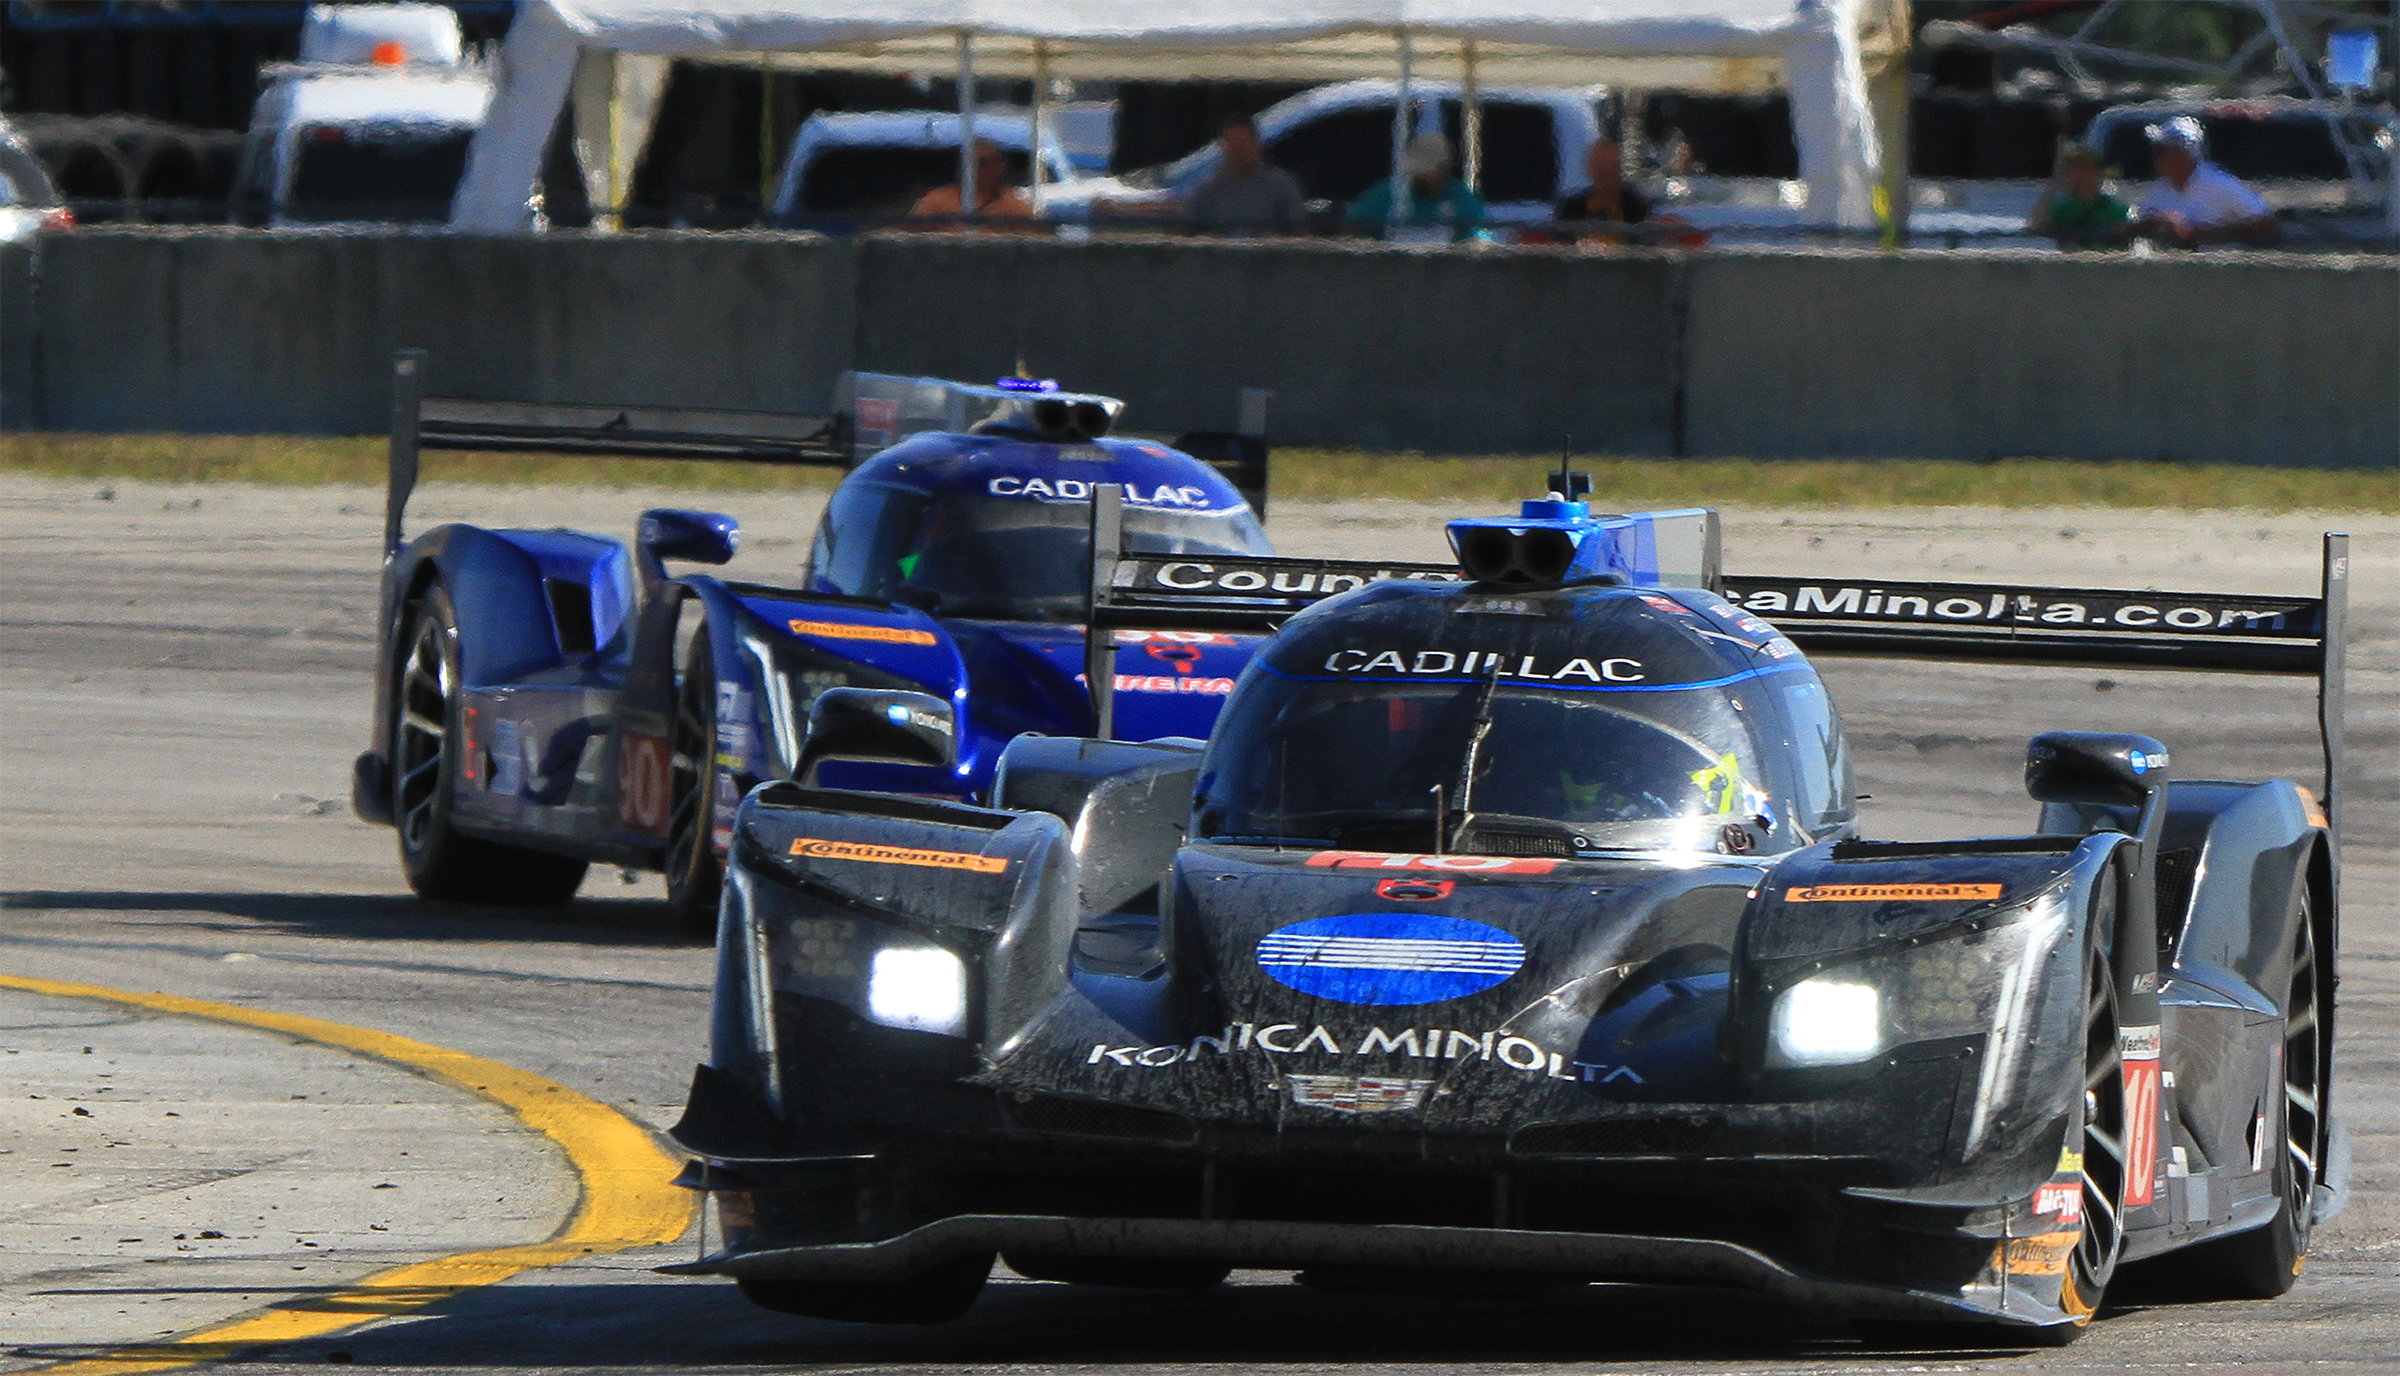 The #10 WTR Cadillac DPi gets two wheels in the air coming through Turn 17. The bumps at Turn 17 caused a couple of wrecks at the 2018 12 Hours. Cars can bounce sideways as well as up and down—that's how the #6 Acura got knocked out, and the Frank Montecalvo in the #64 Scuderia Corsa Ferrari ended up on its roof after hitting the spinning #52 AFS/PR1 Ligier. (Chris Jasurek/Epoch Times)